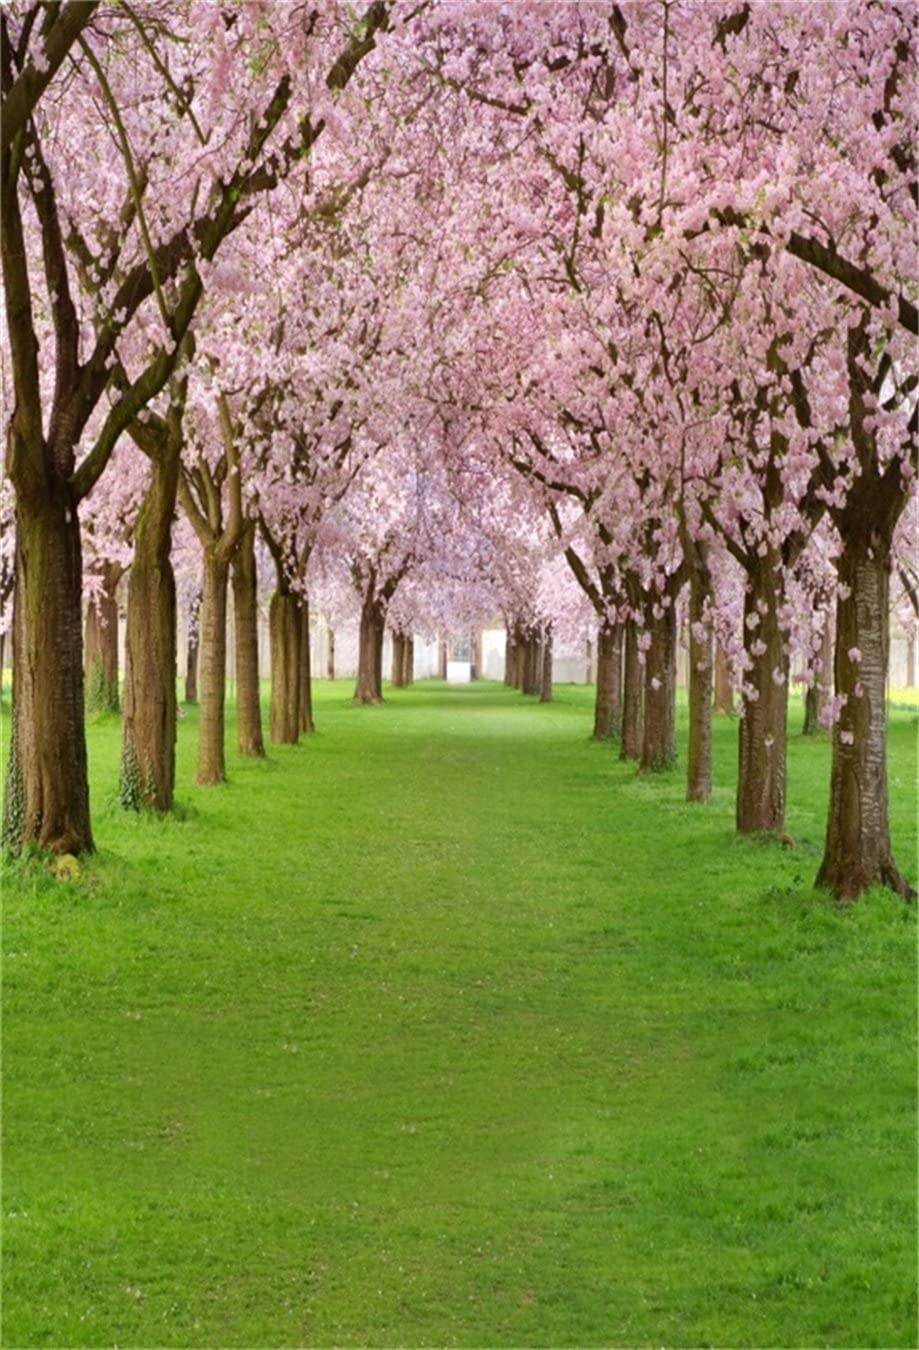 CdHBH 6x8ft Spring Forest Park Small Flower Portrait Clothing Photo Photography Background Cloth Photo Studio Studio Photo Photography Prop Wallpaper Home Decoration Vinyl Material